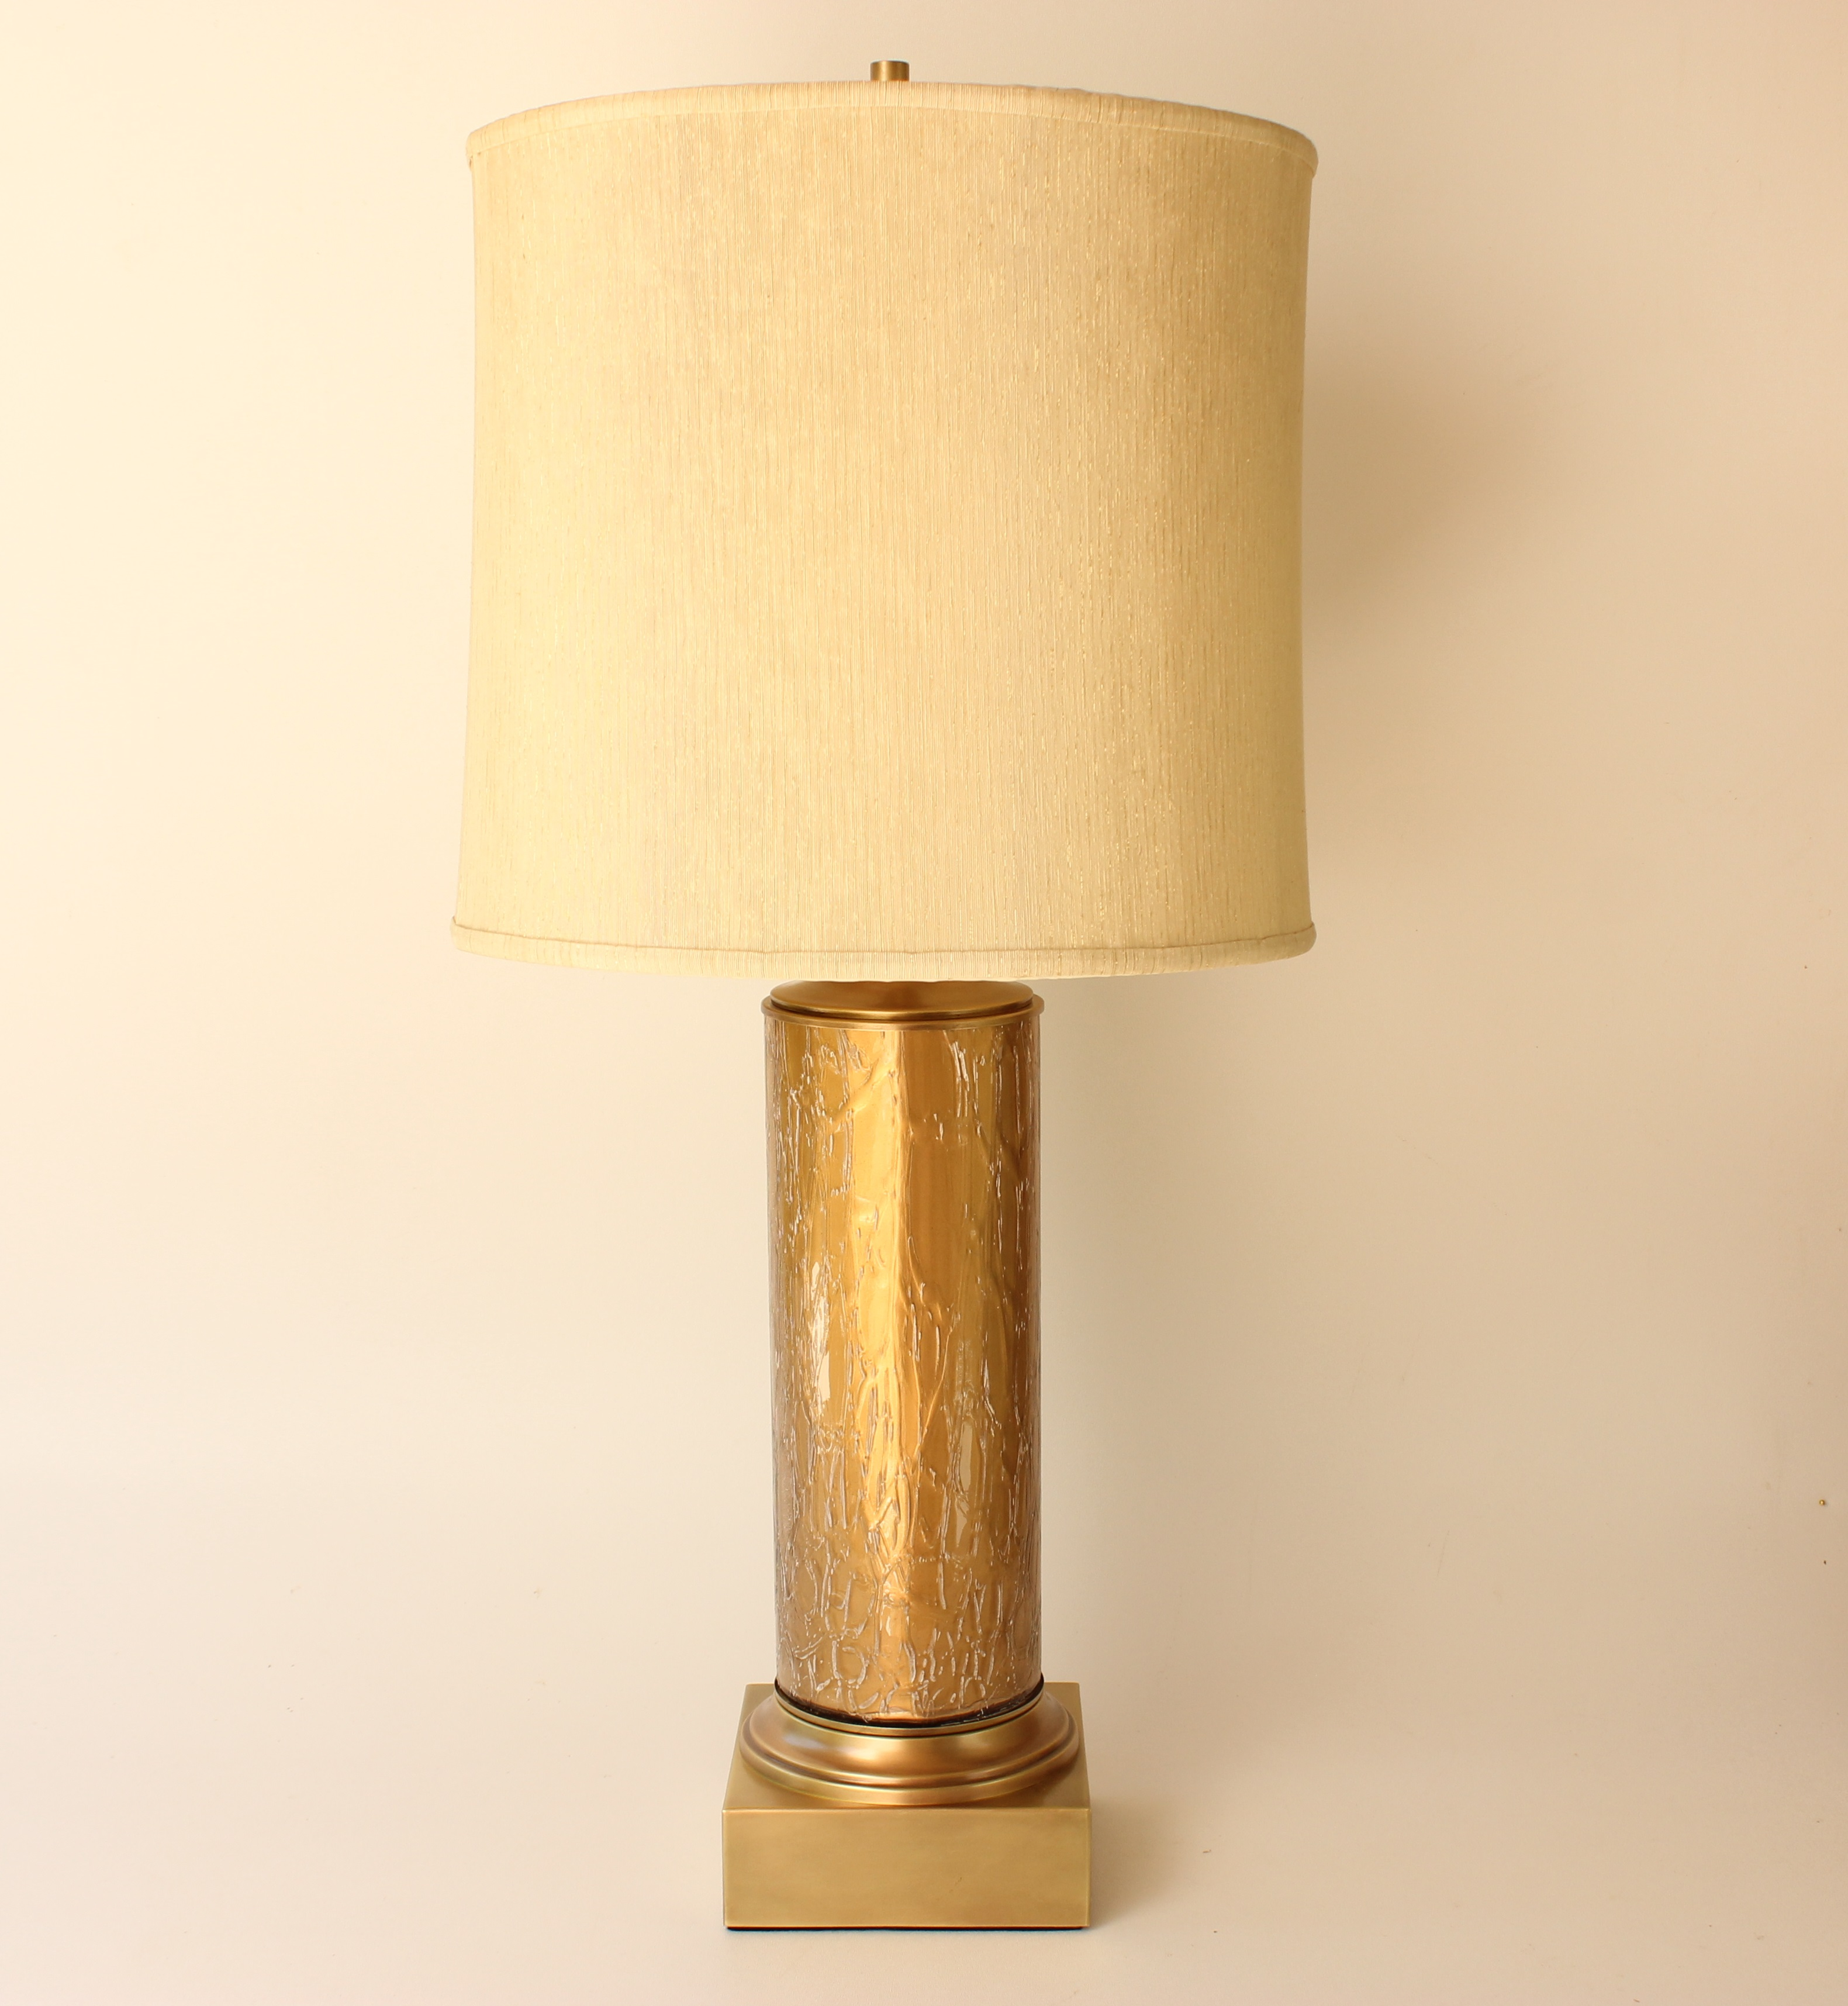 This Vintage Table Lamp Features A Gold Backed Crackle Glass Cylinder With  Brushed Brass Accents